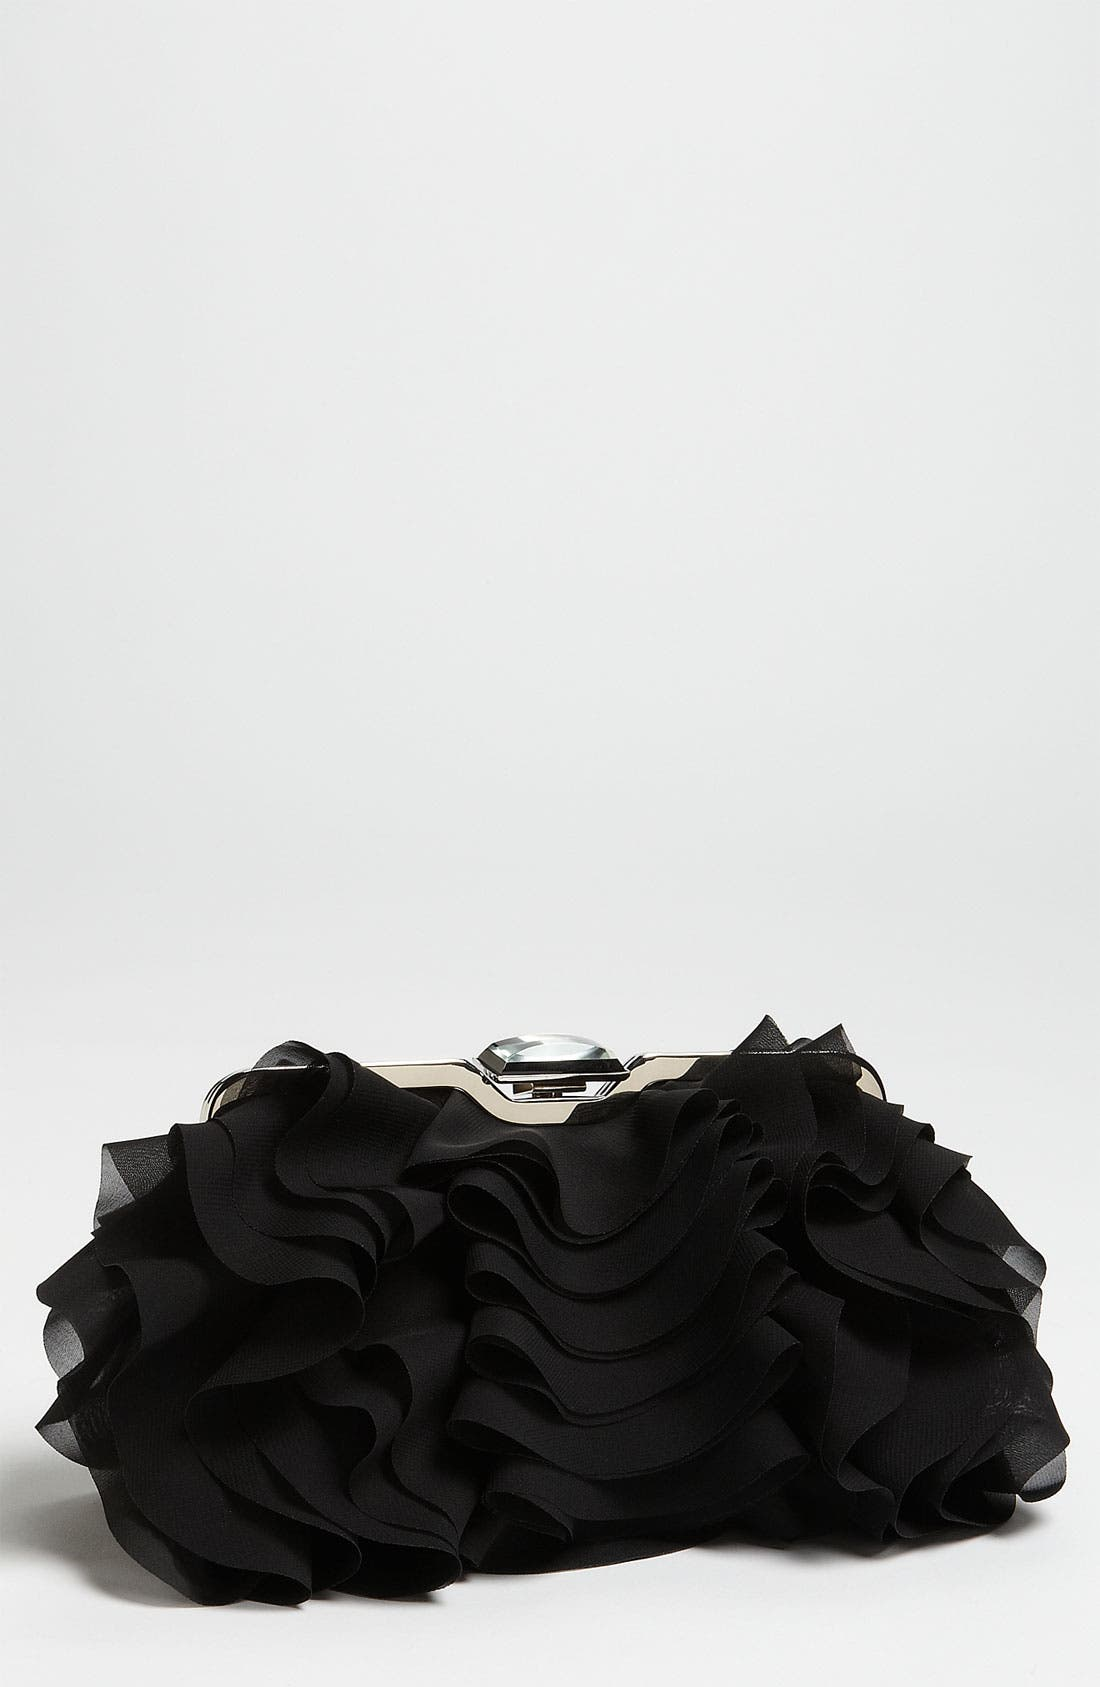 Alternate Image 1 Selected - Glint Ruffle Front Clutch